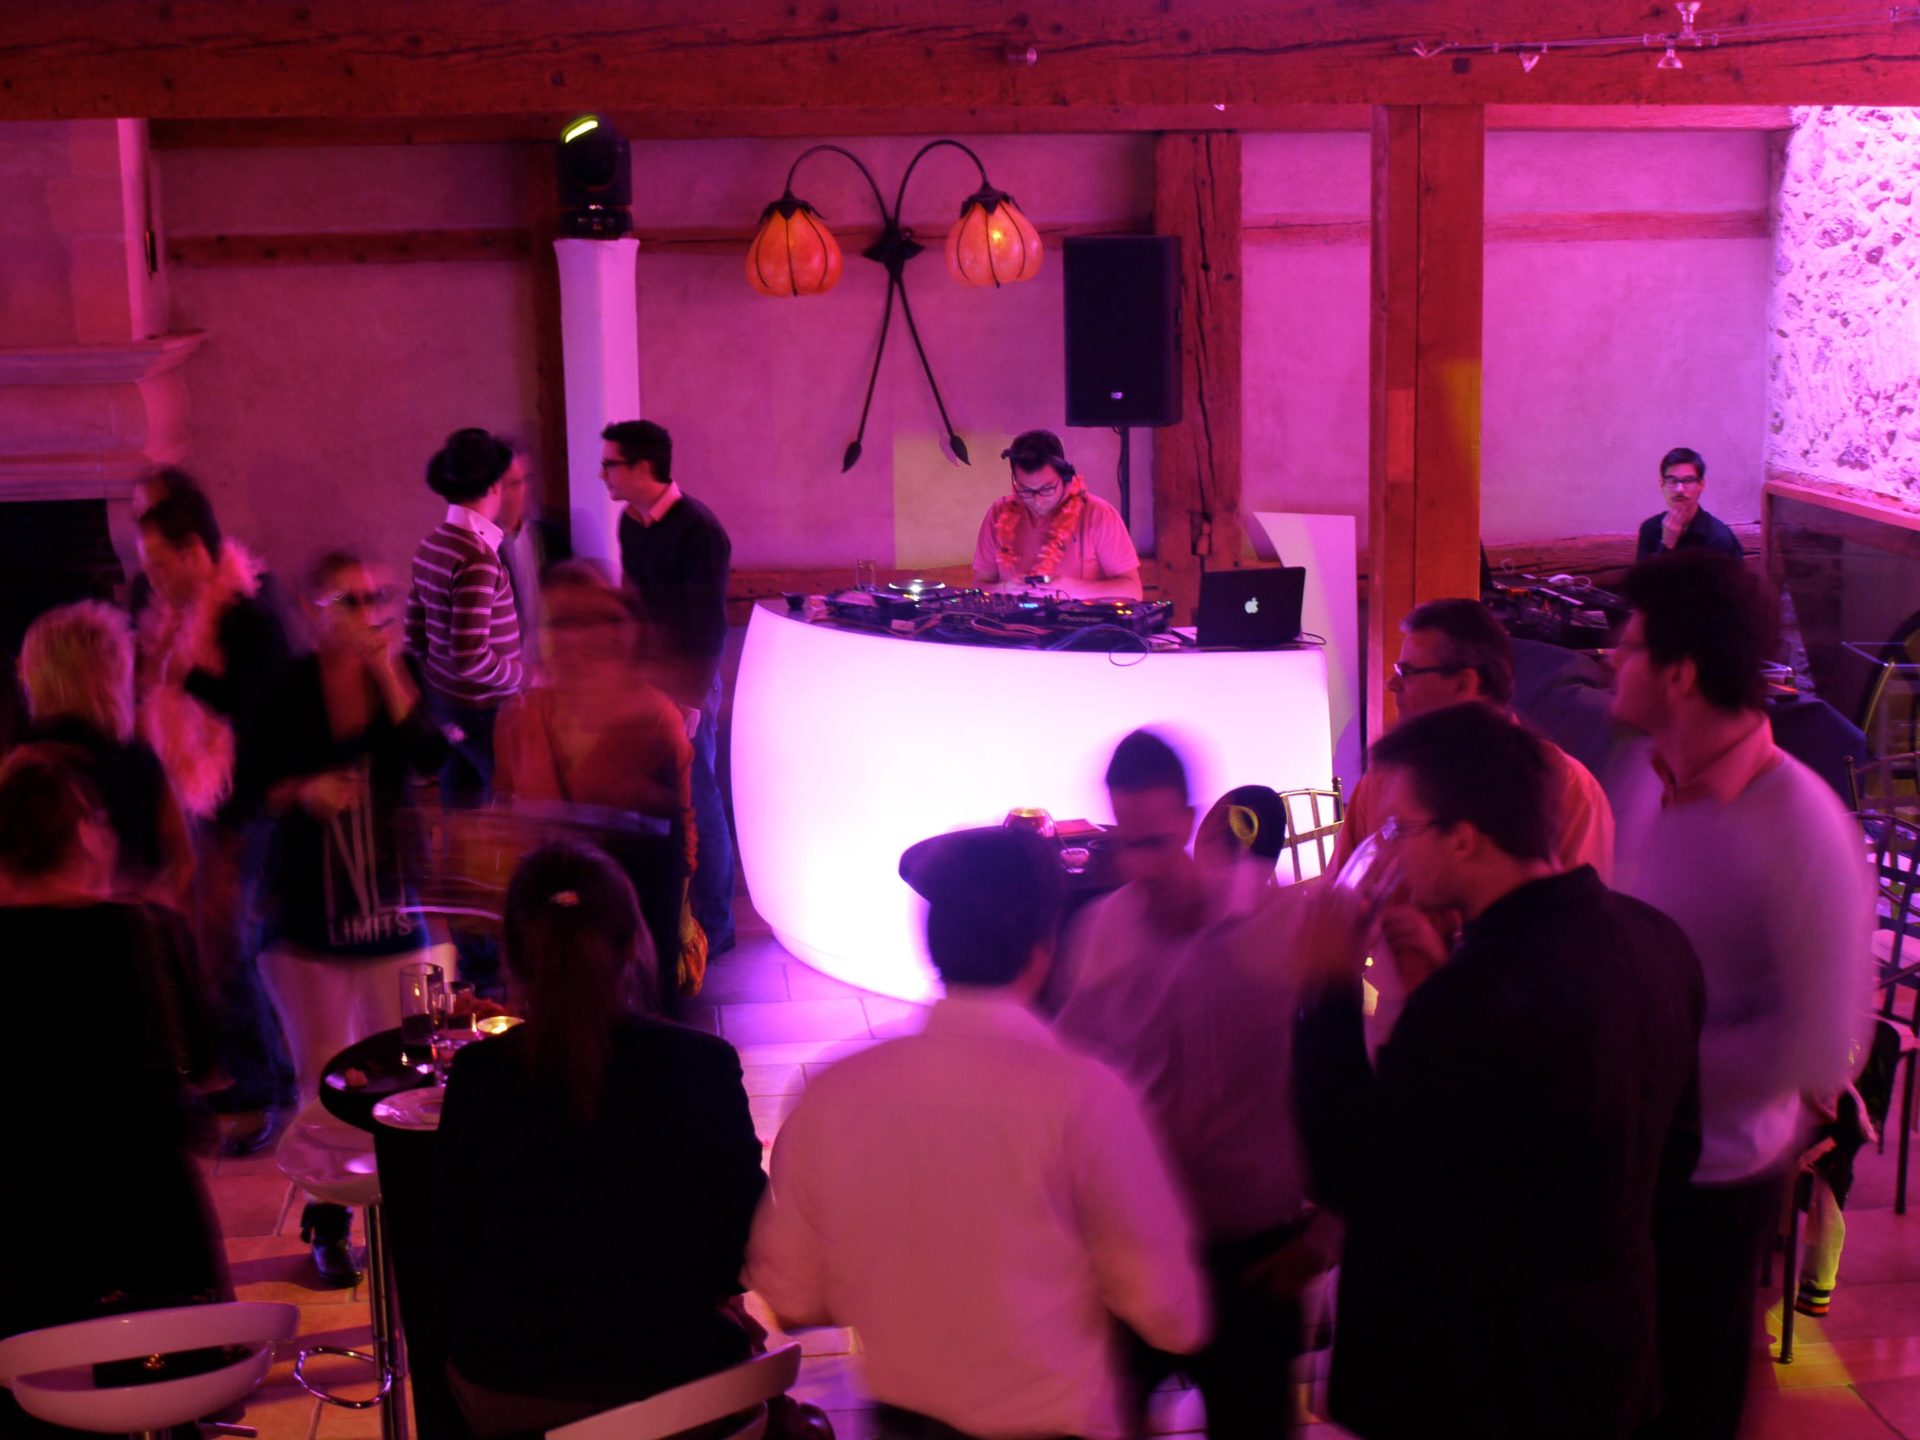 portes des iris 08DJ musique danse scaled - The success of an event often lies in the choice of the DJ!